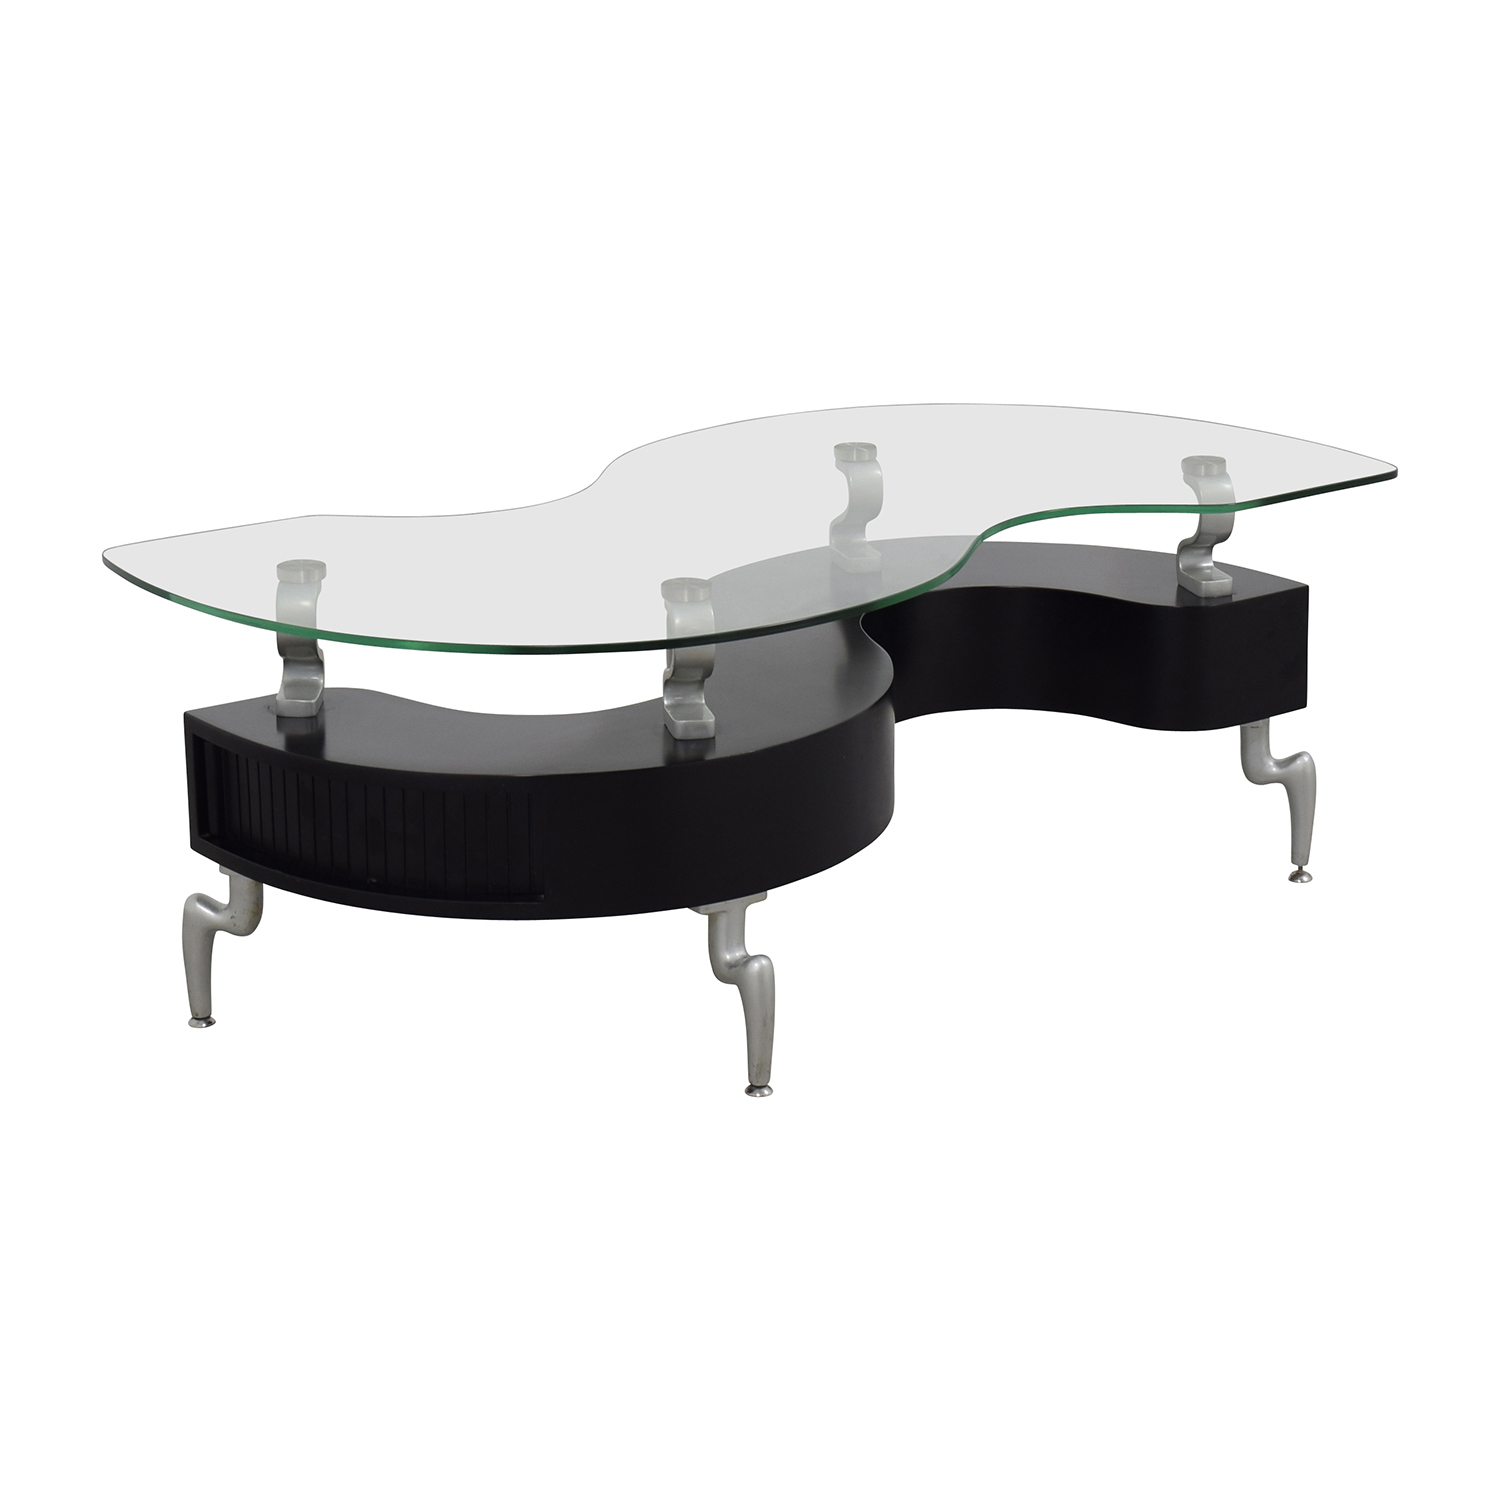 ... Hand; Contemporary S Shaped Contemporary Coffee Table / Coffee Tables  ...